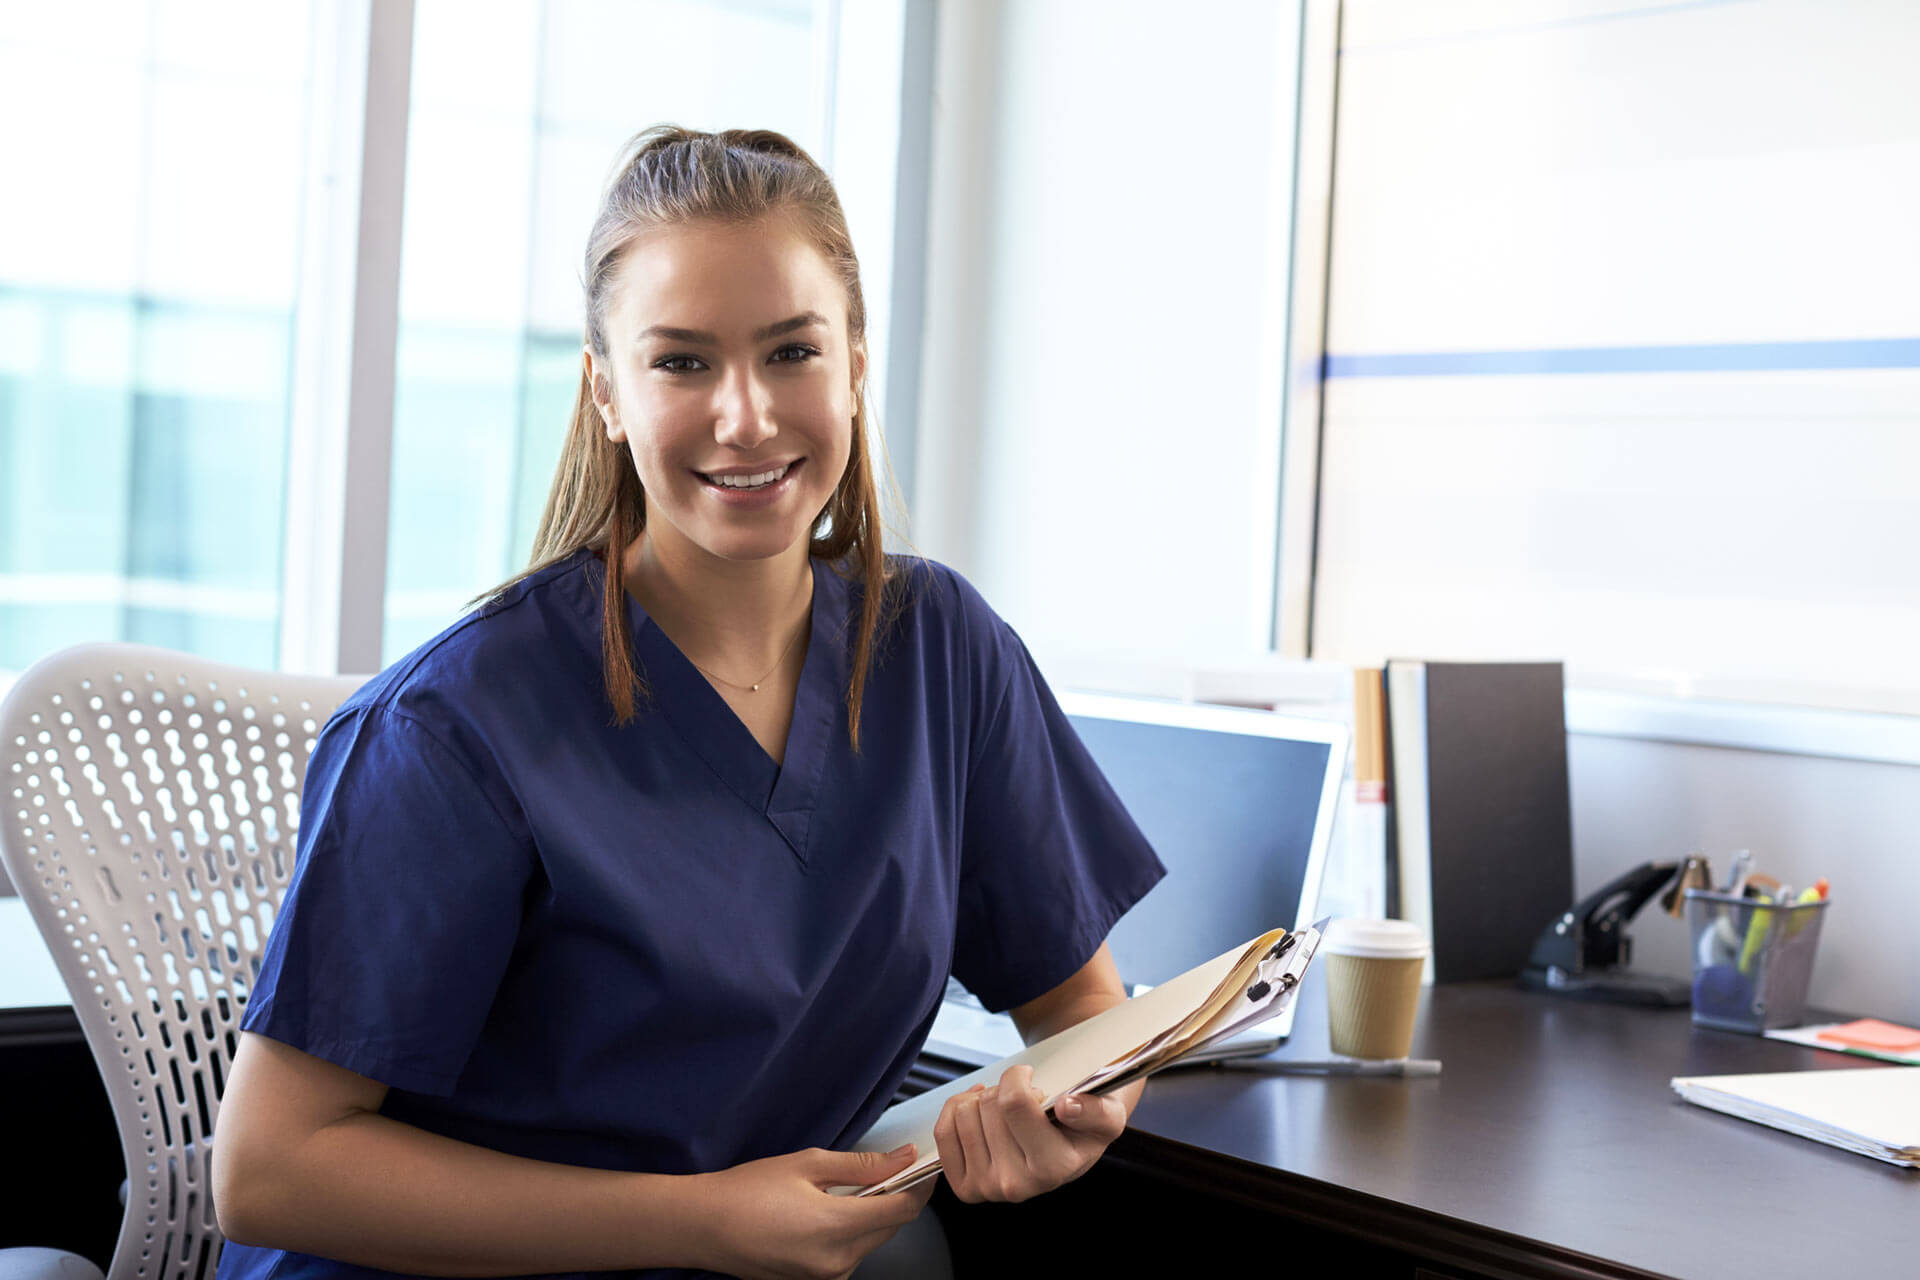 Important Considerations to Help You Pass the NCLEX-RN®